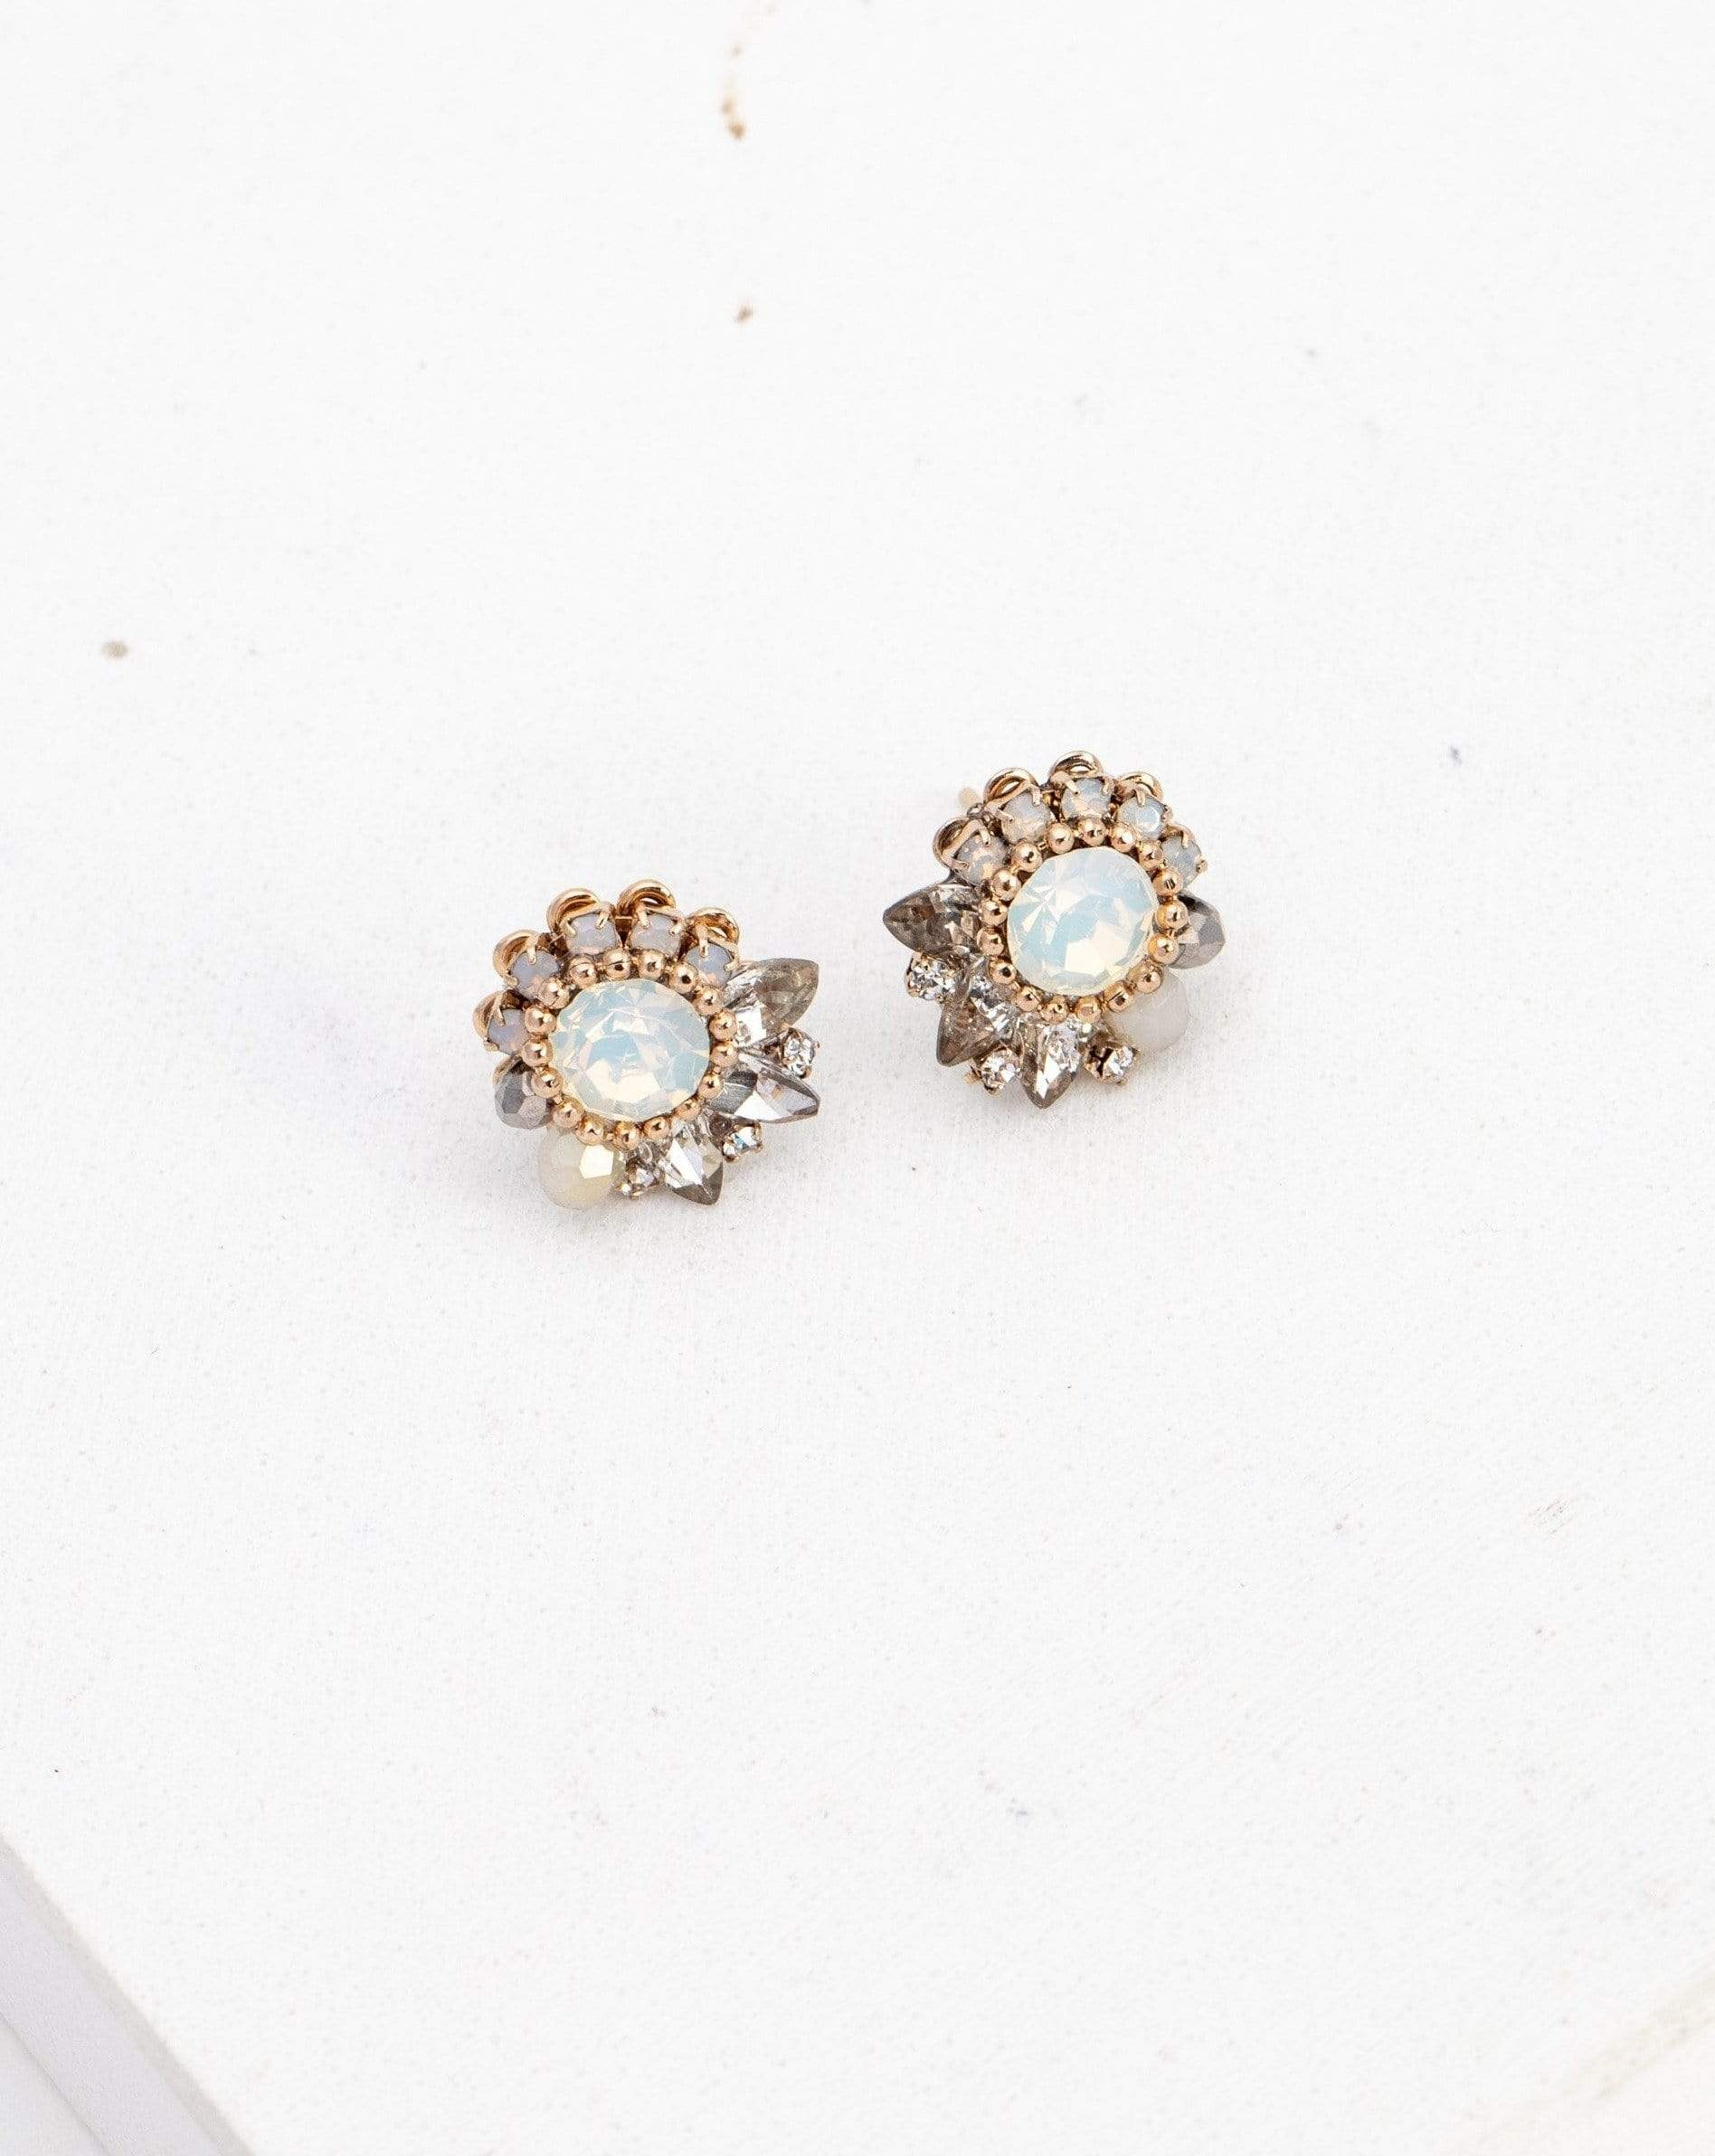 Amelia Crystal Post Earrings - White Opal